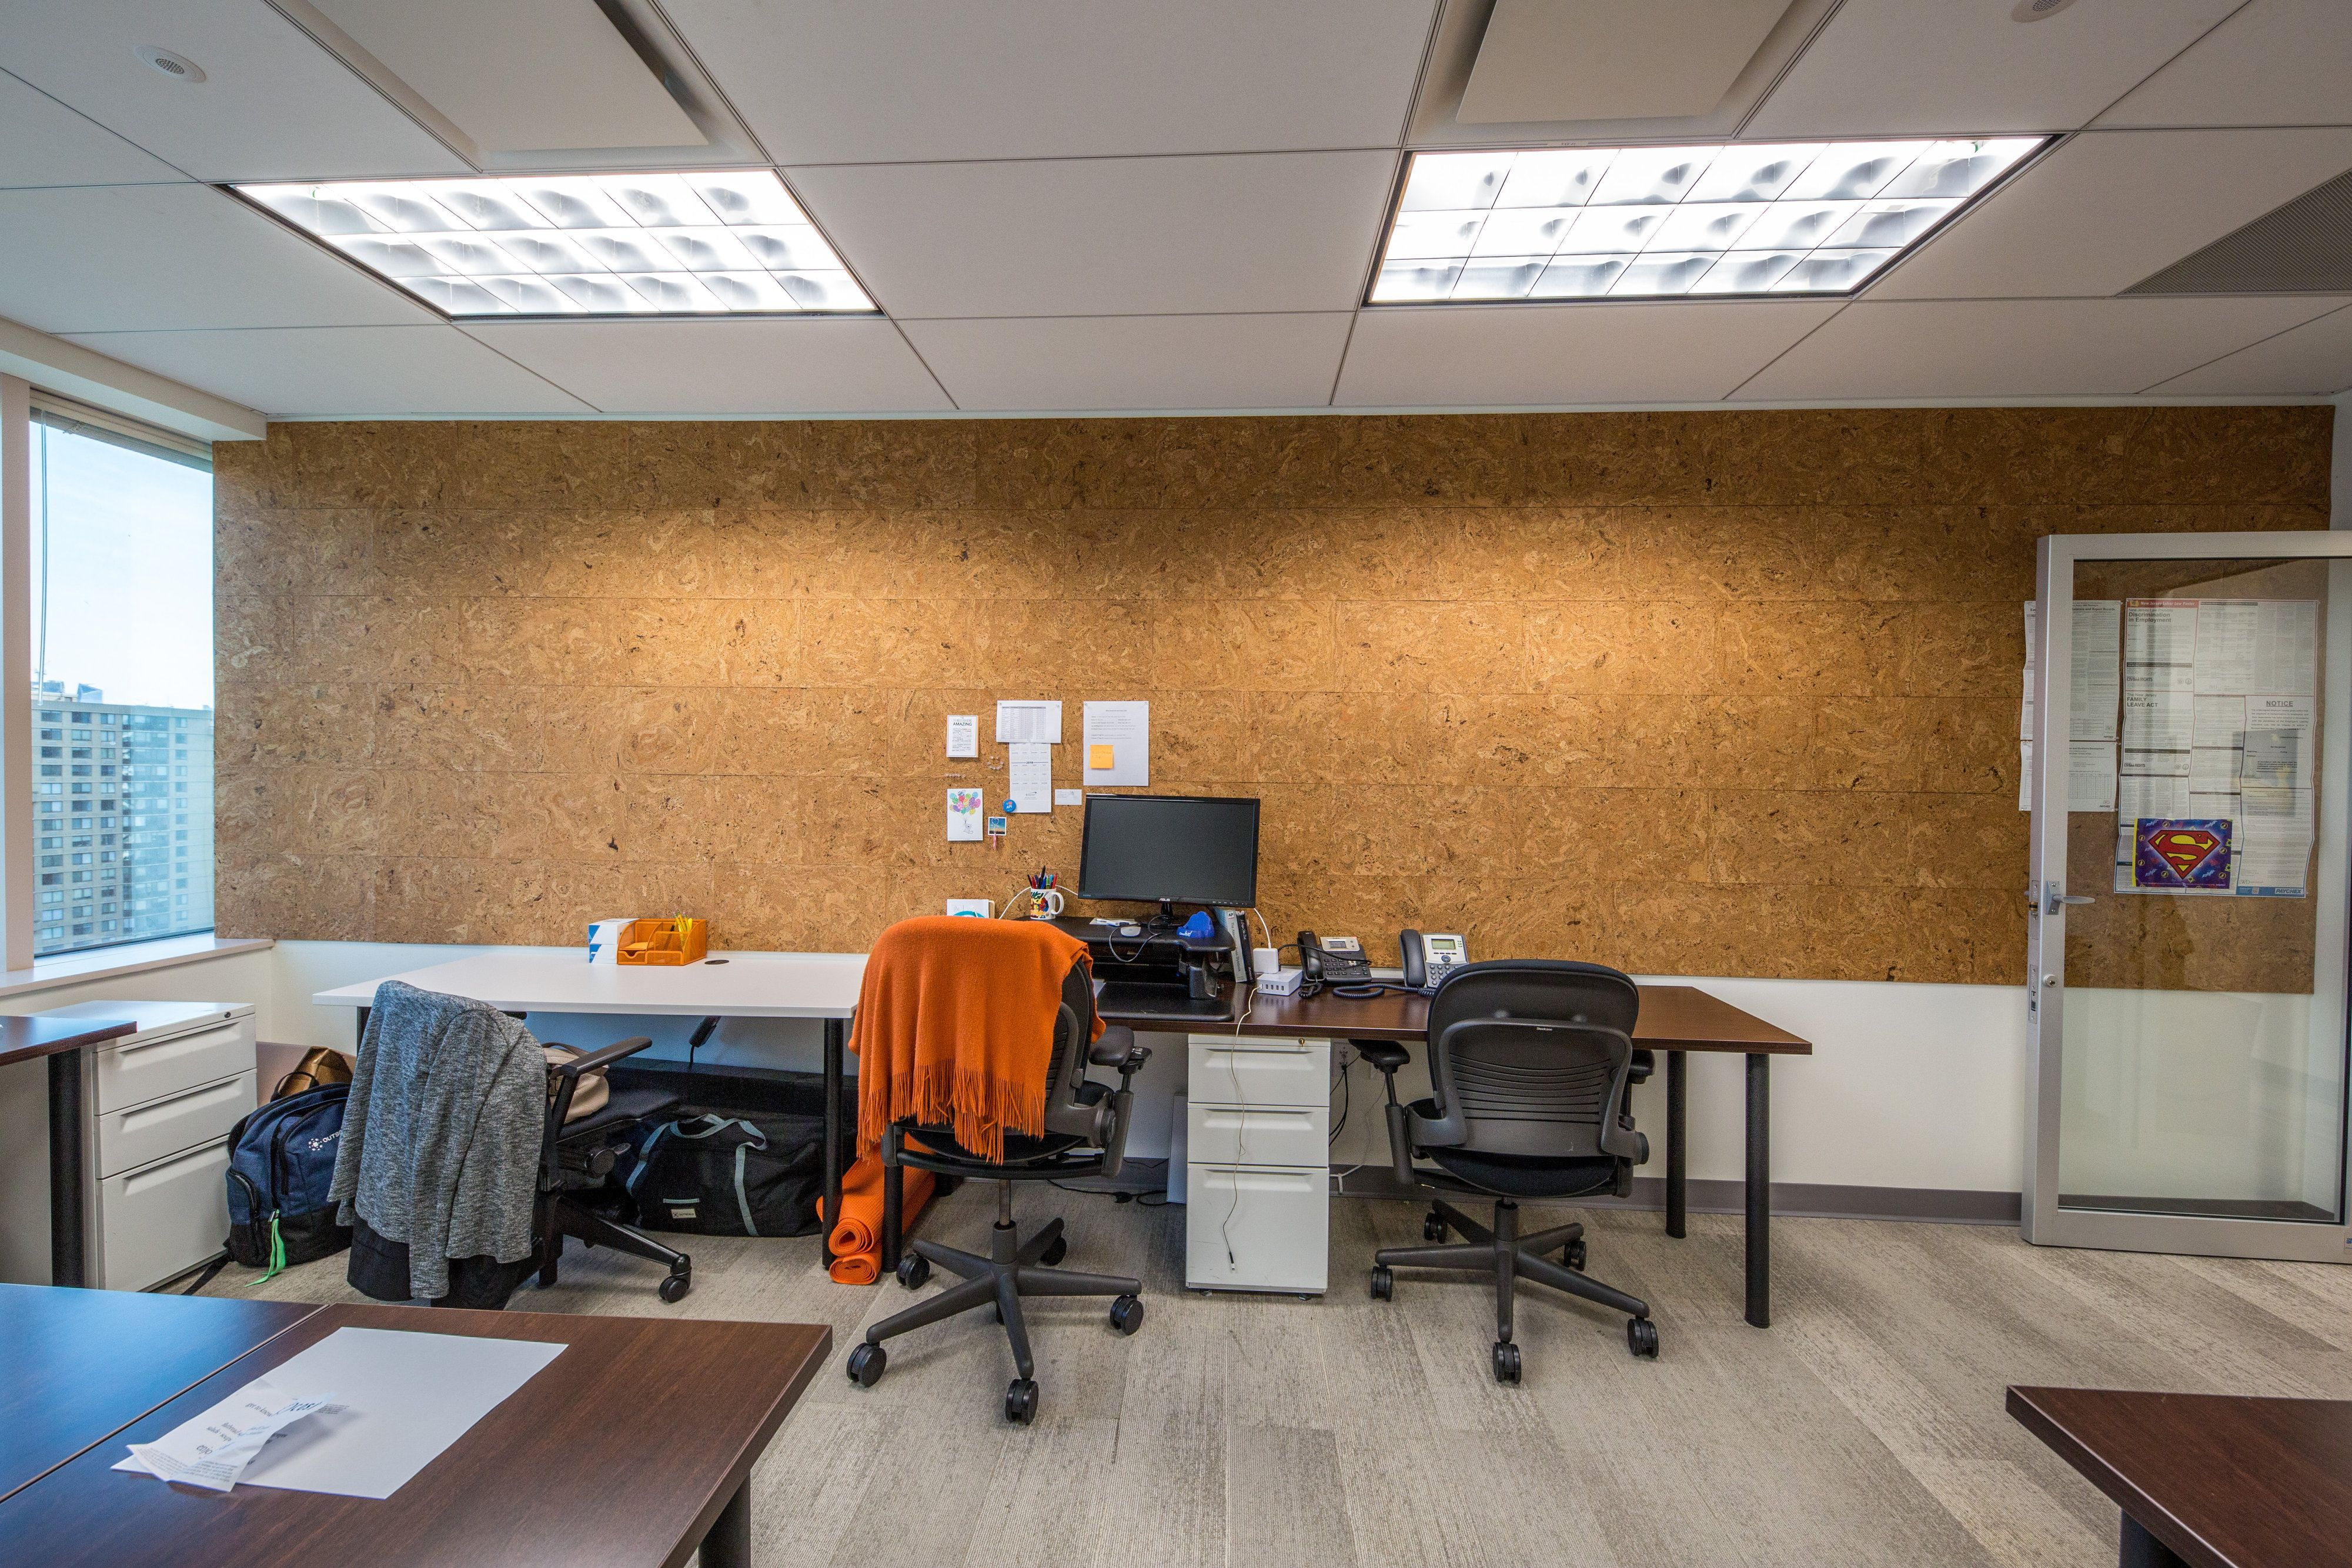 Office Space In New Jersey For Rent Lease In 2020 Office Space Small Office Rent